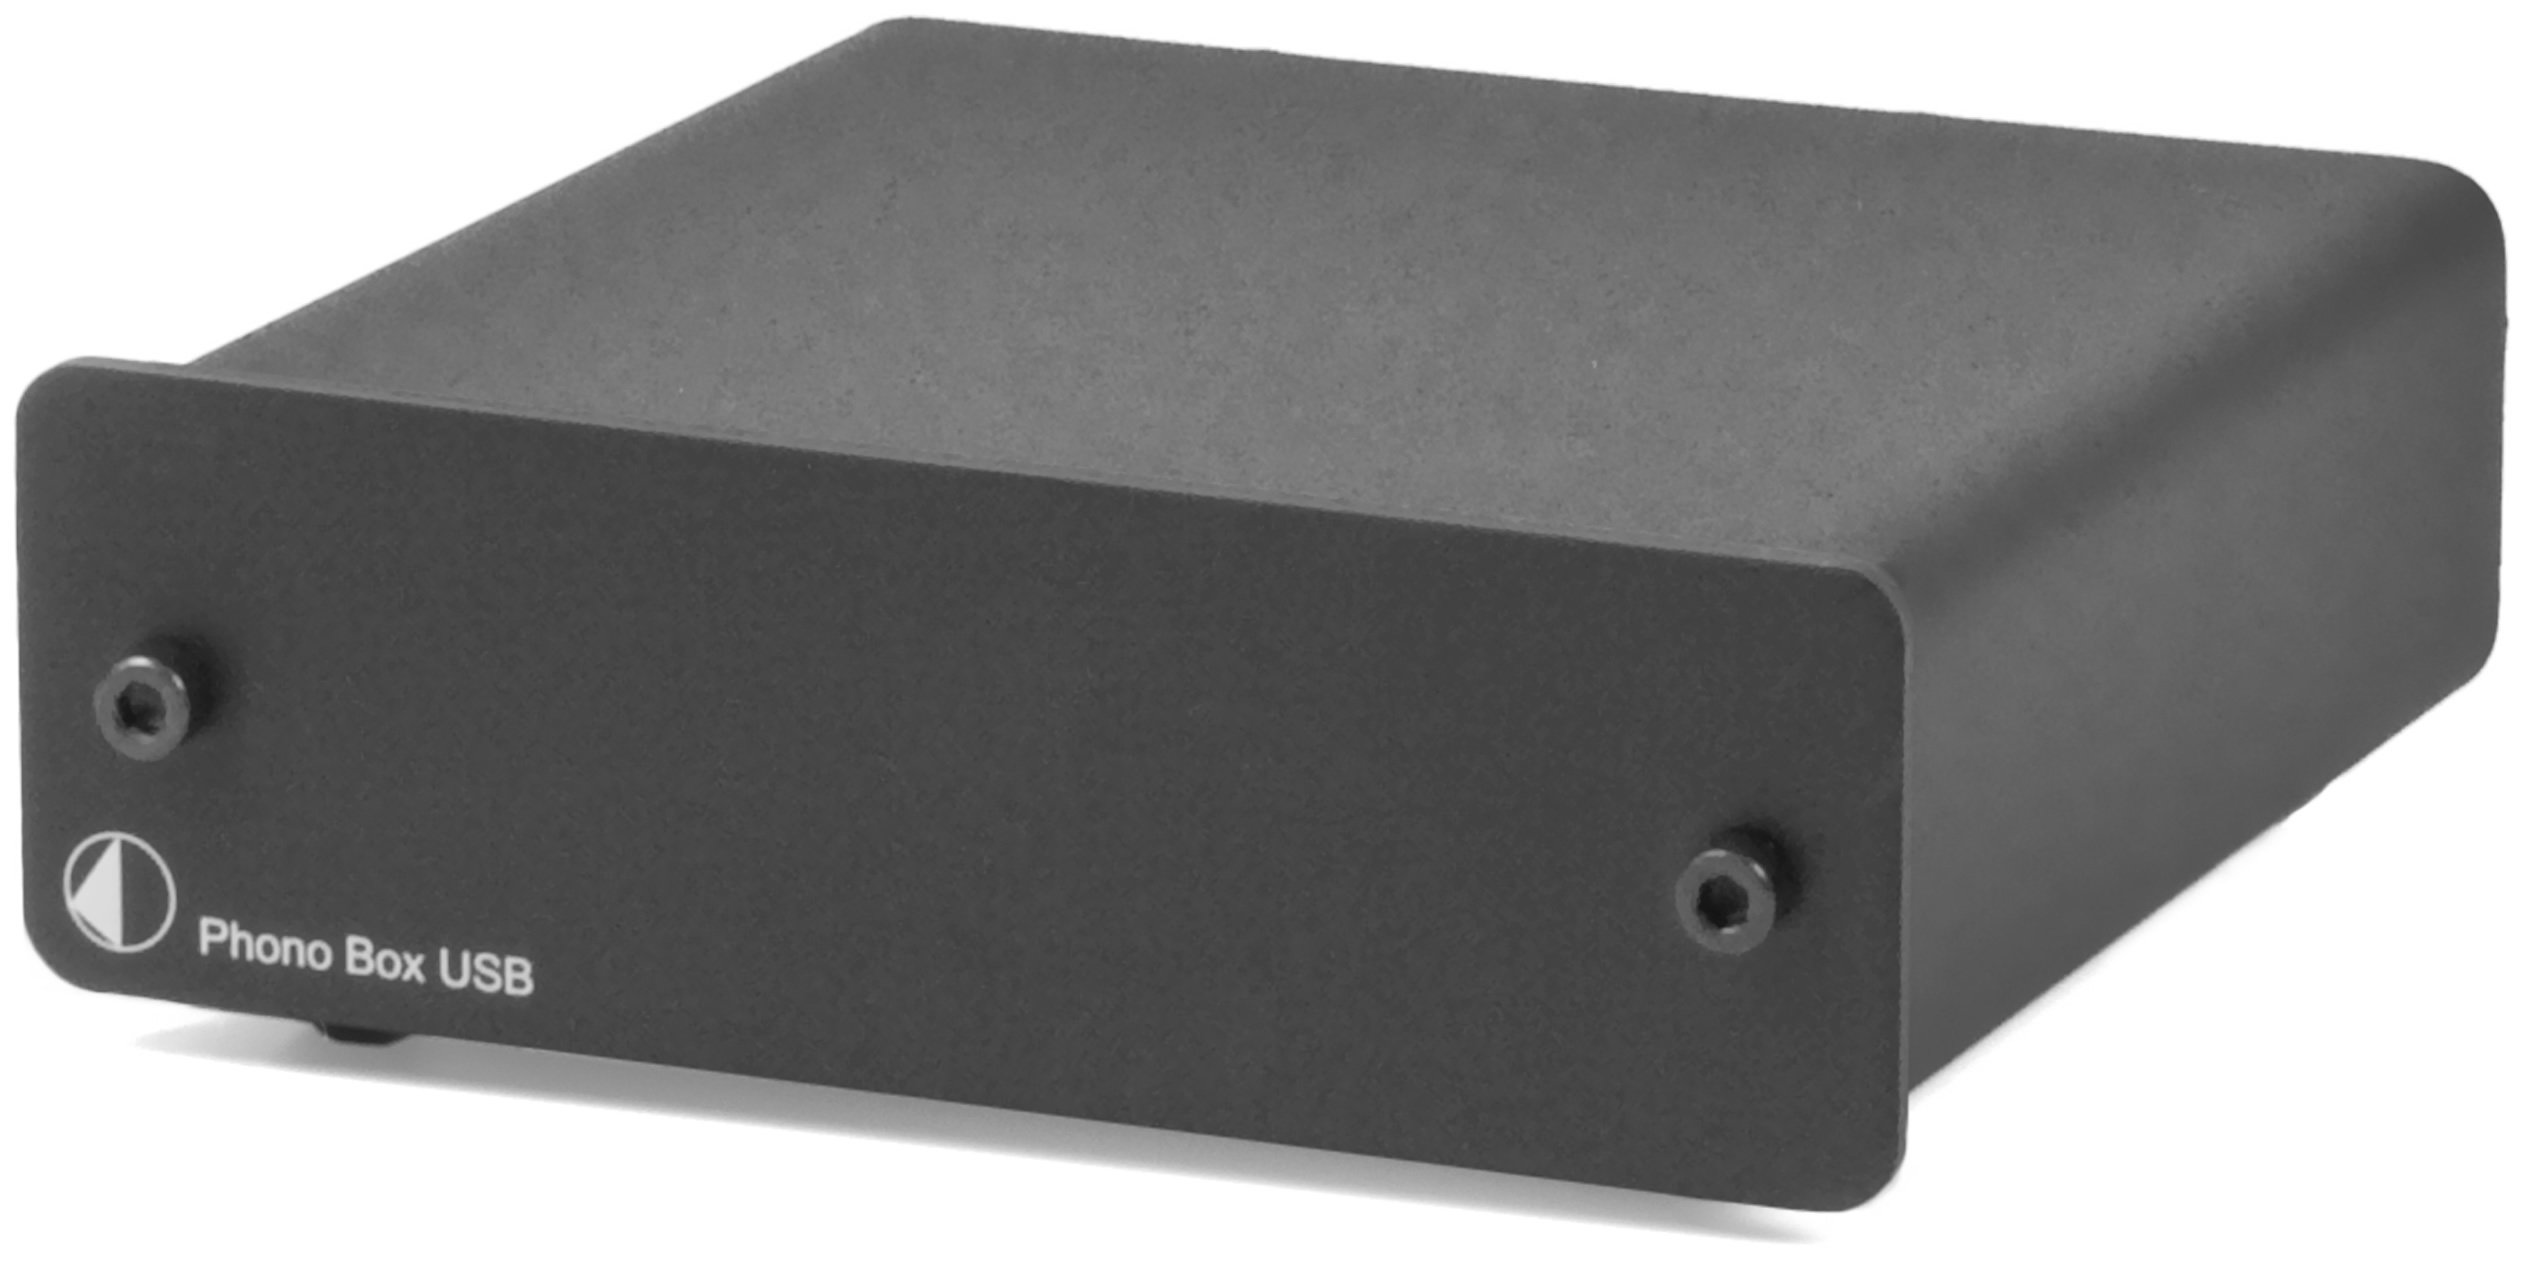 Pro-Ject Phono Box USB Phono Preamplifier, Black by Pro-Ject